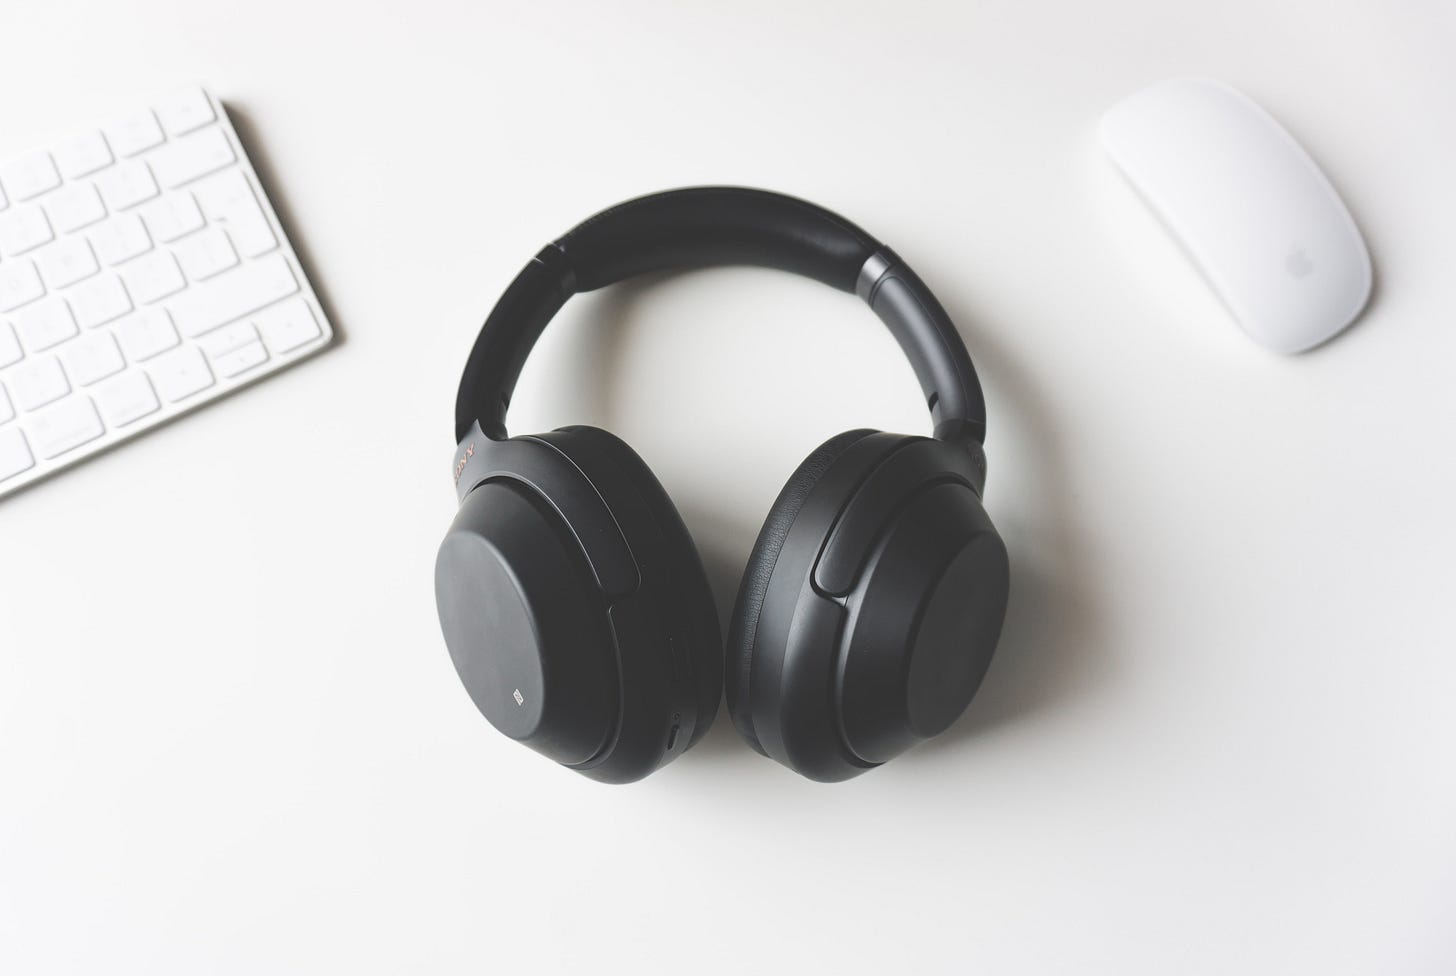 Headphones with a keyboard and mouse